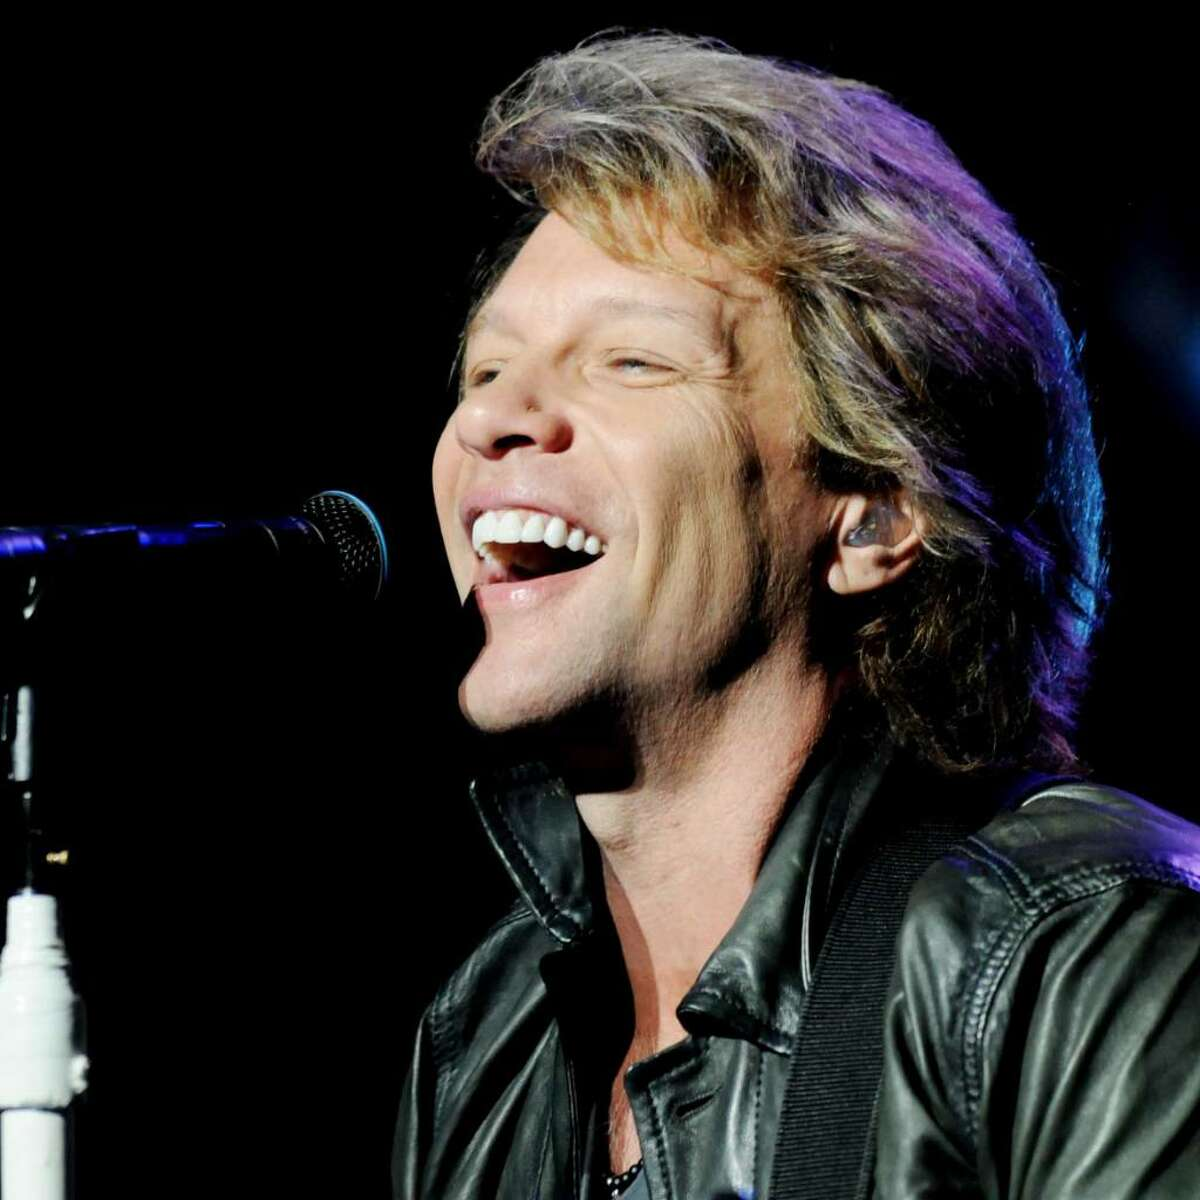 Headliner Jon Bon Jovi performs on stage at SPAC, on Sunday, July 11, 2010, Saratoga Springs, NY, before a sold out amphitheater, and huge lawn crowd. (Luanne M. Ferris / Times Union)